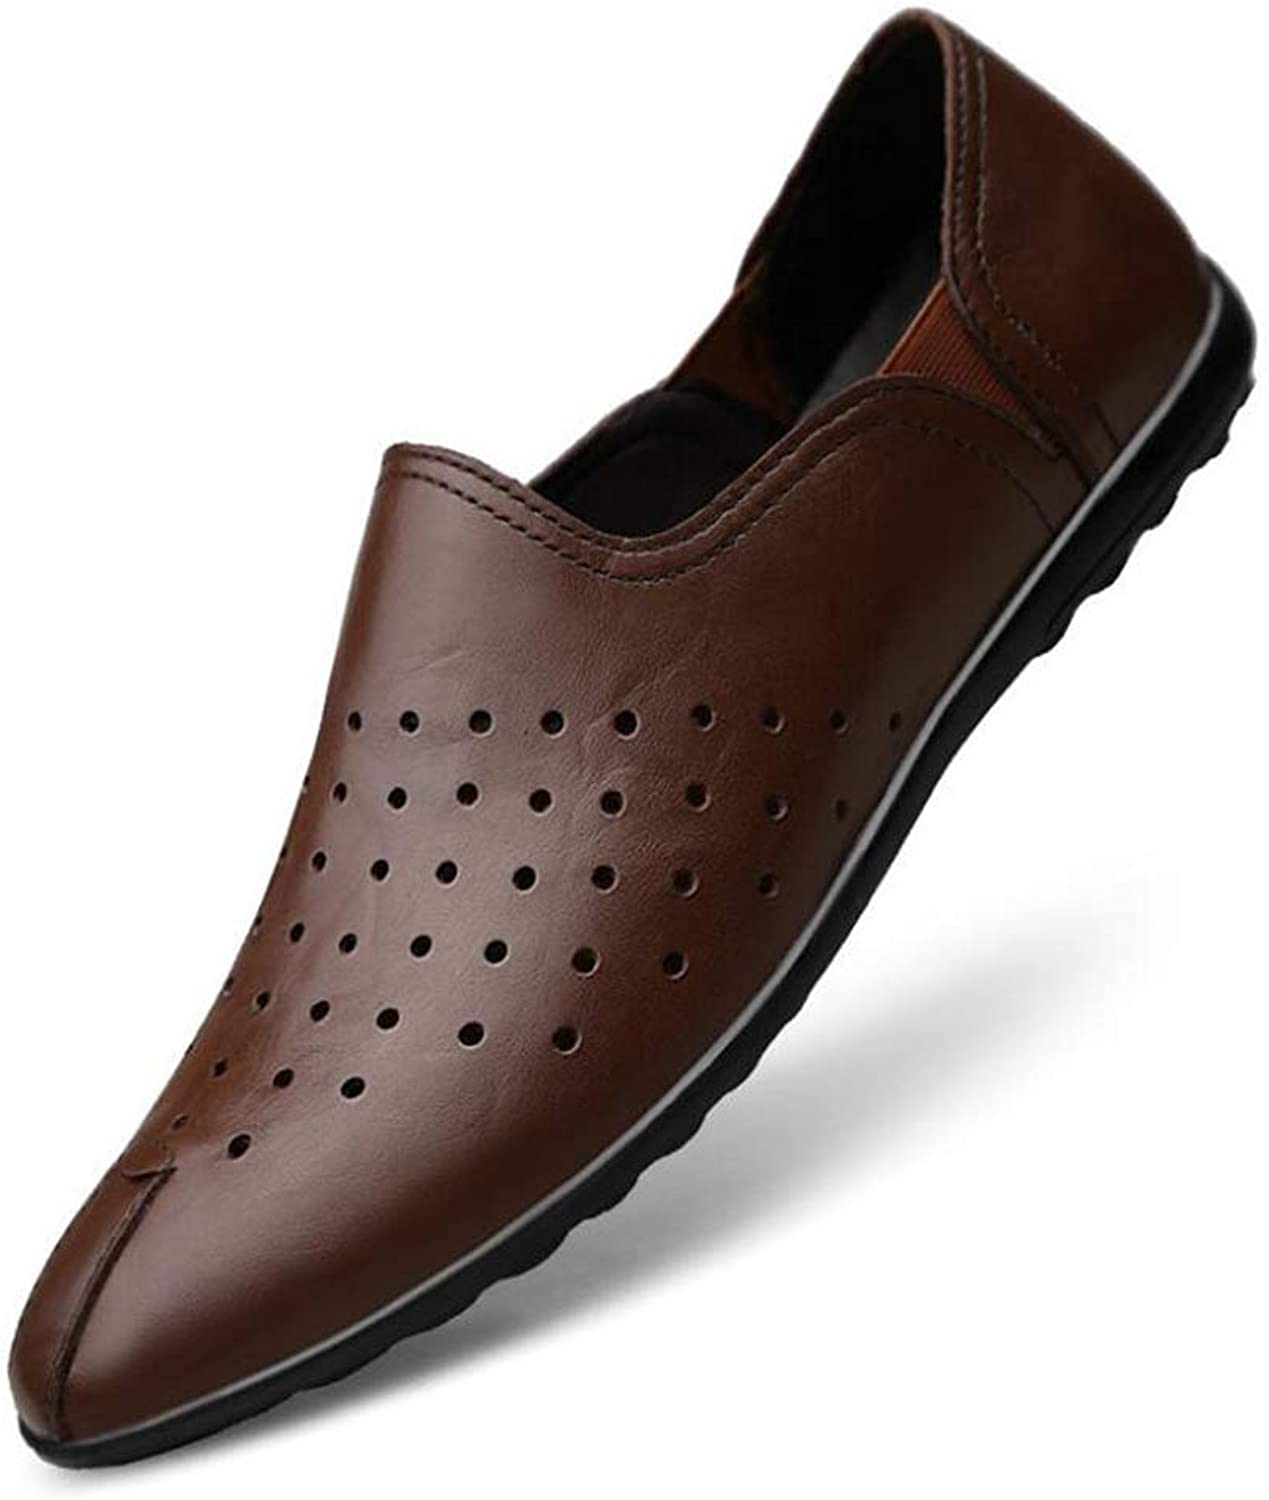 Y-H Men shoes, Soft Sole Comfort Driving shoes,Loafers & Slip-Ons Lazy shoes,Formal Business shoes Cycling shoes,b,44